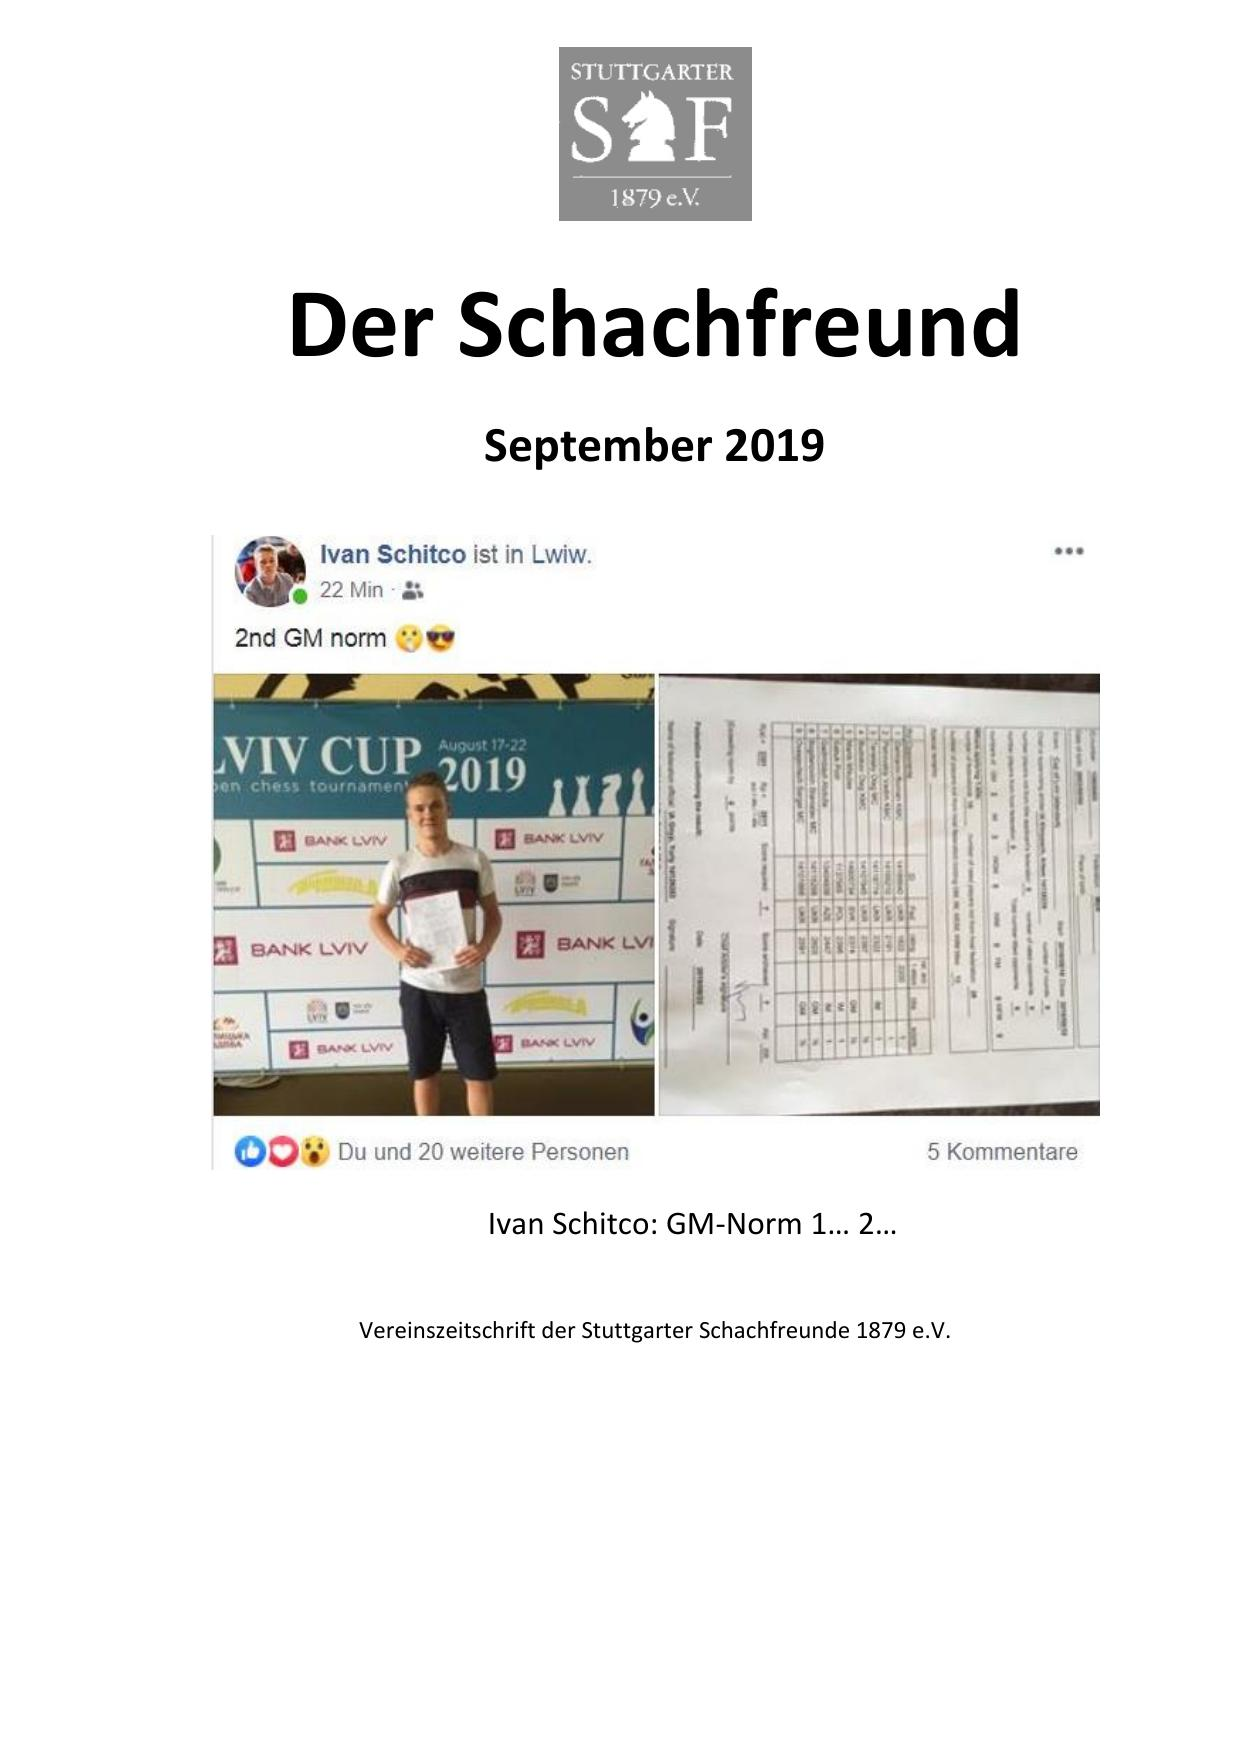 Schachfreund-2019-09